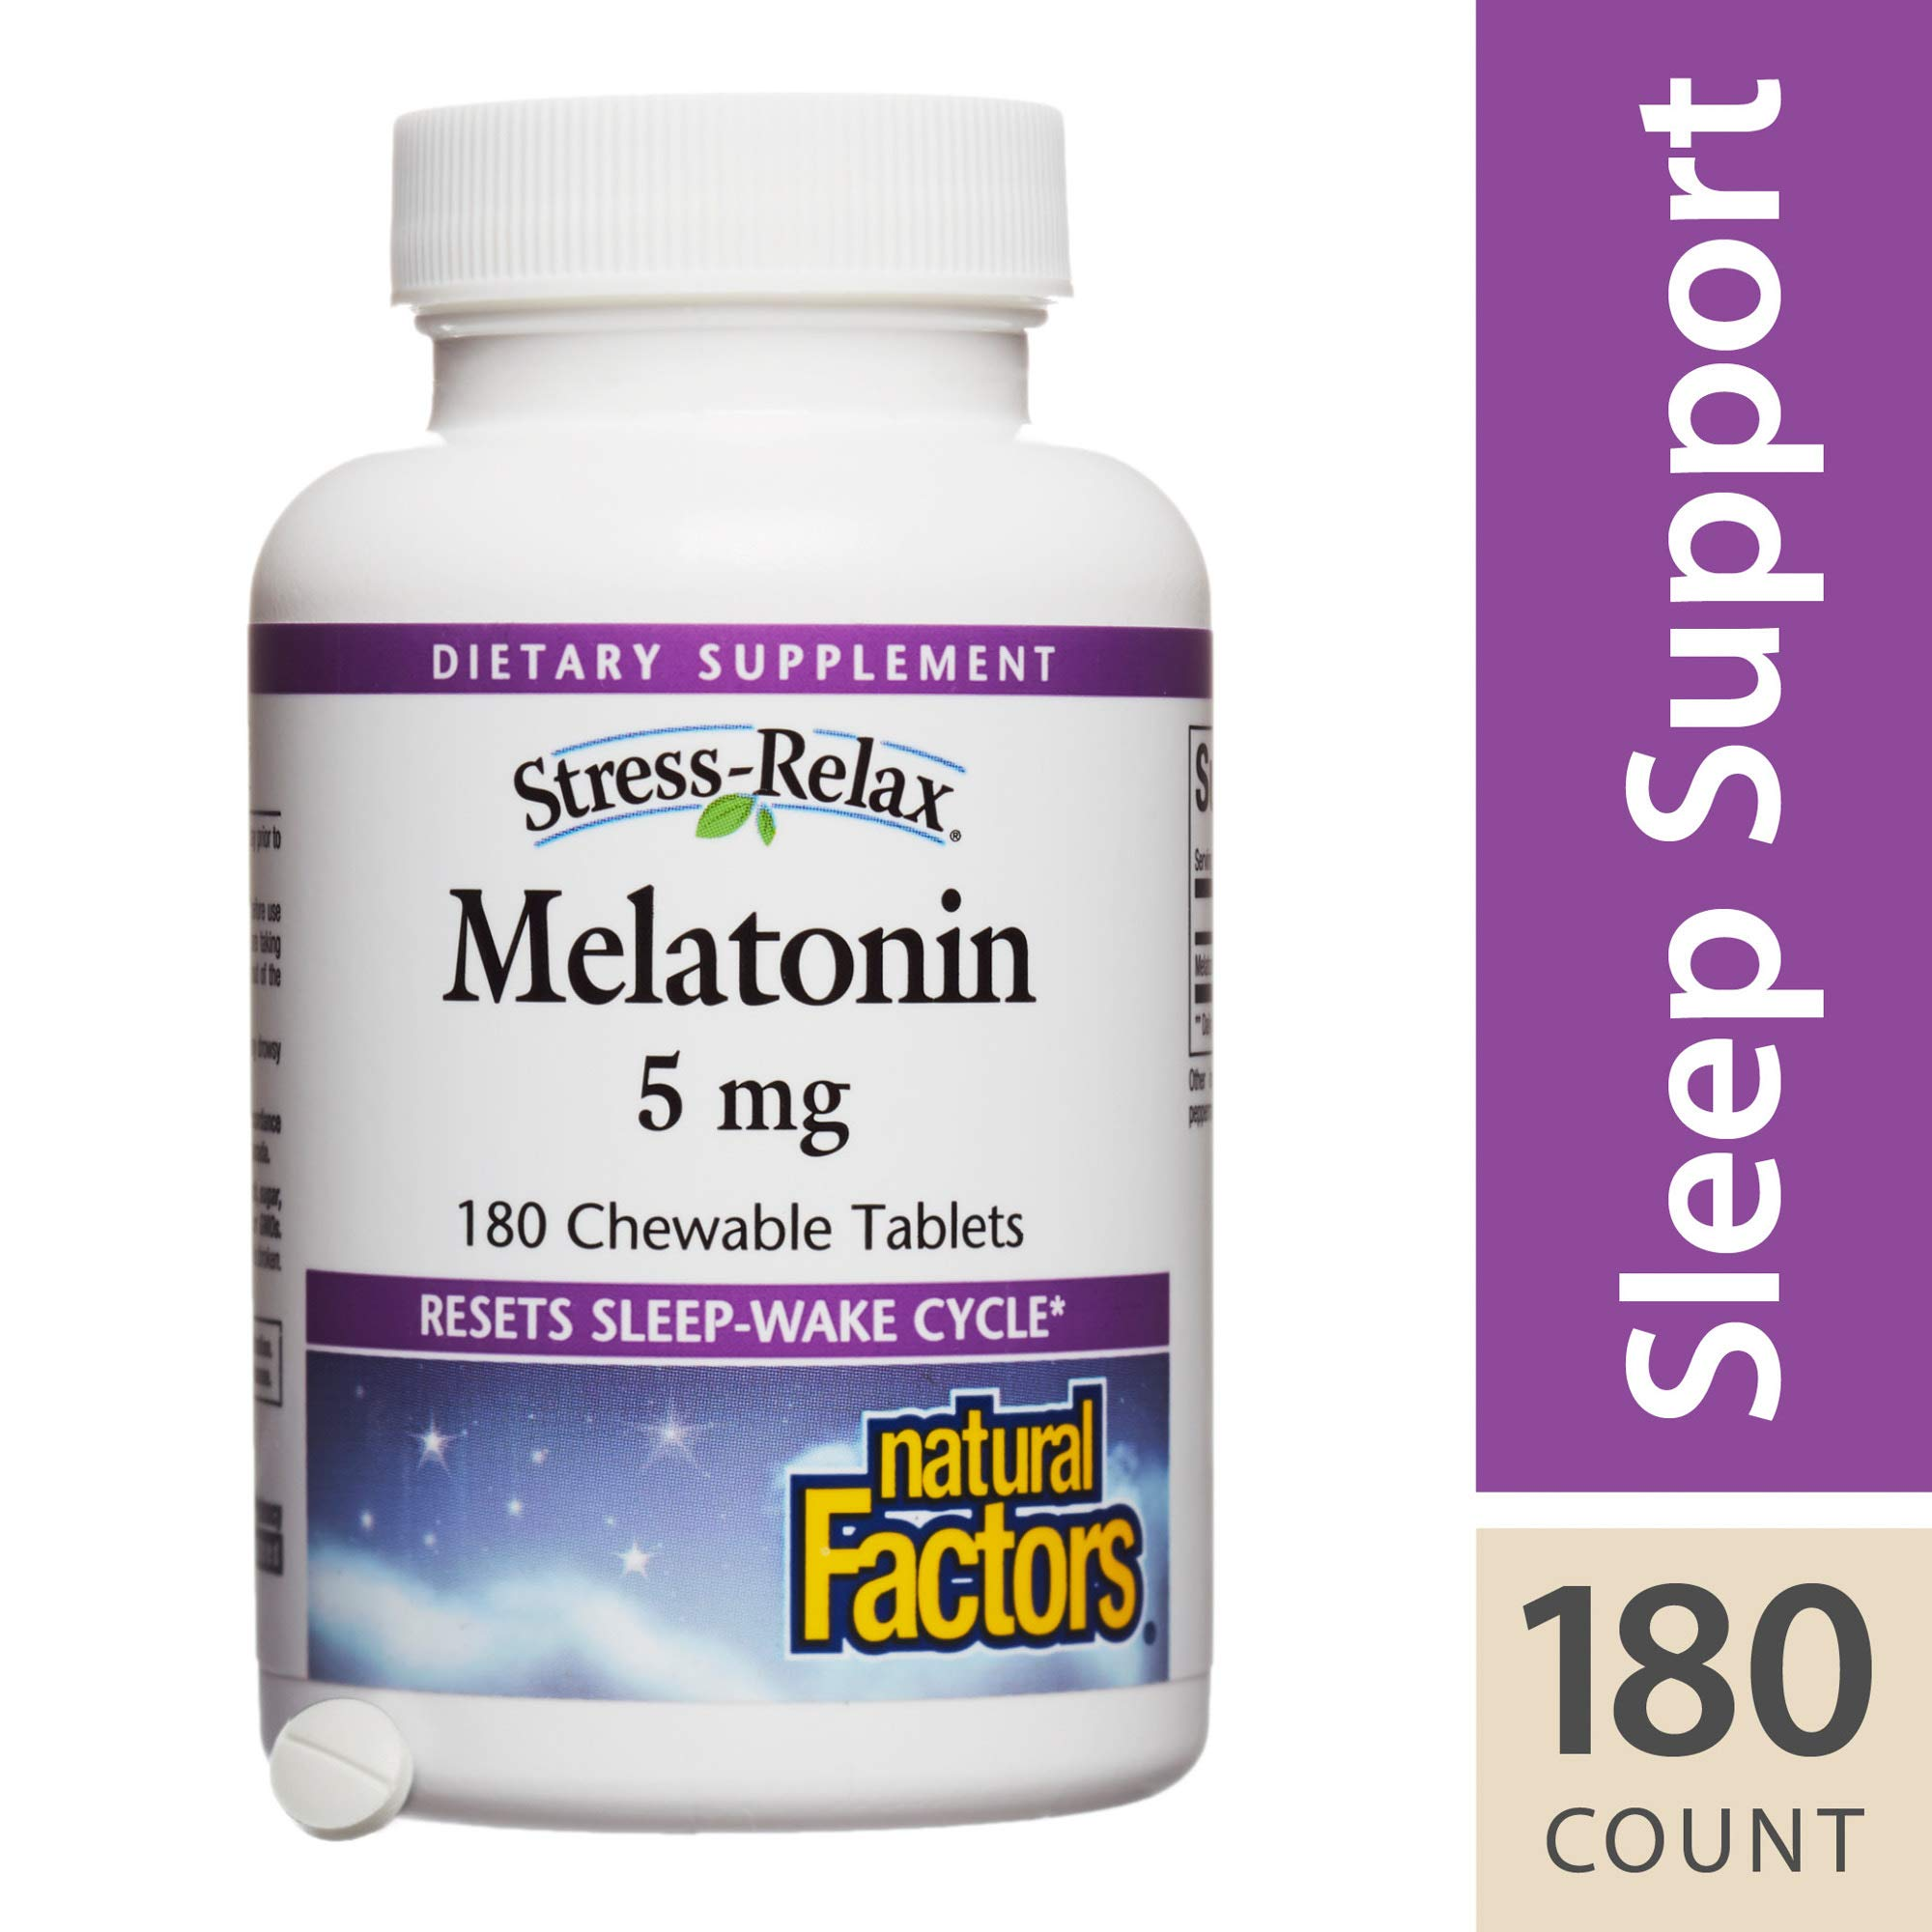 Natural Factors - Stress-Relax Melatonin 5mg, Naturally Promotes a More Restful and Natural